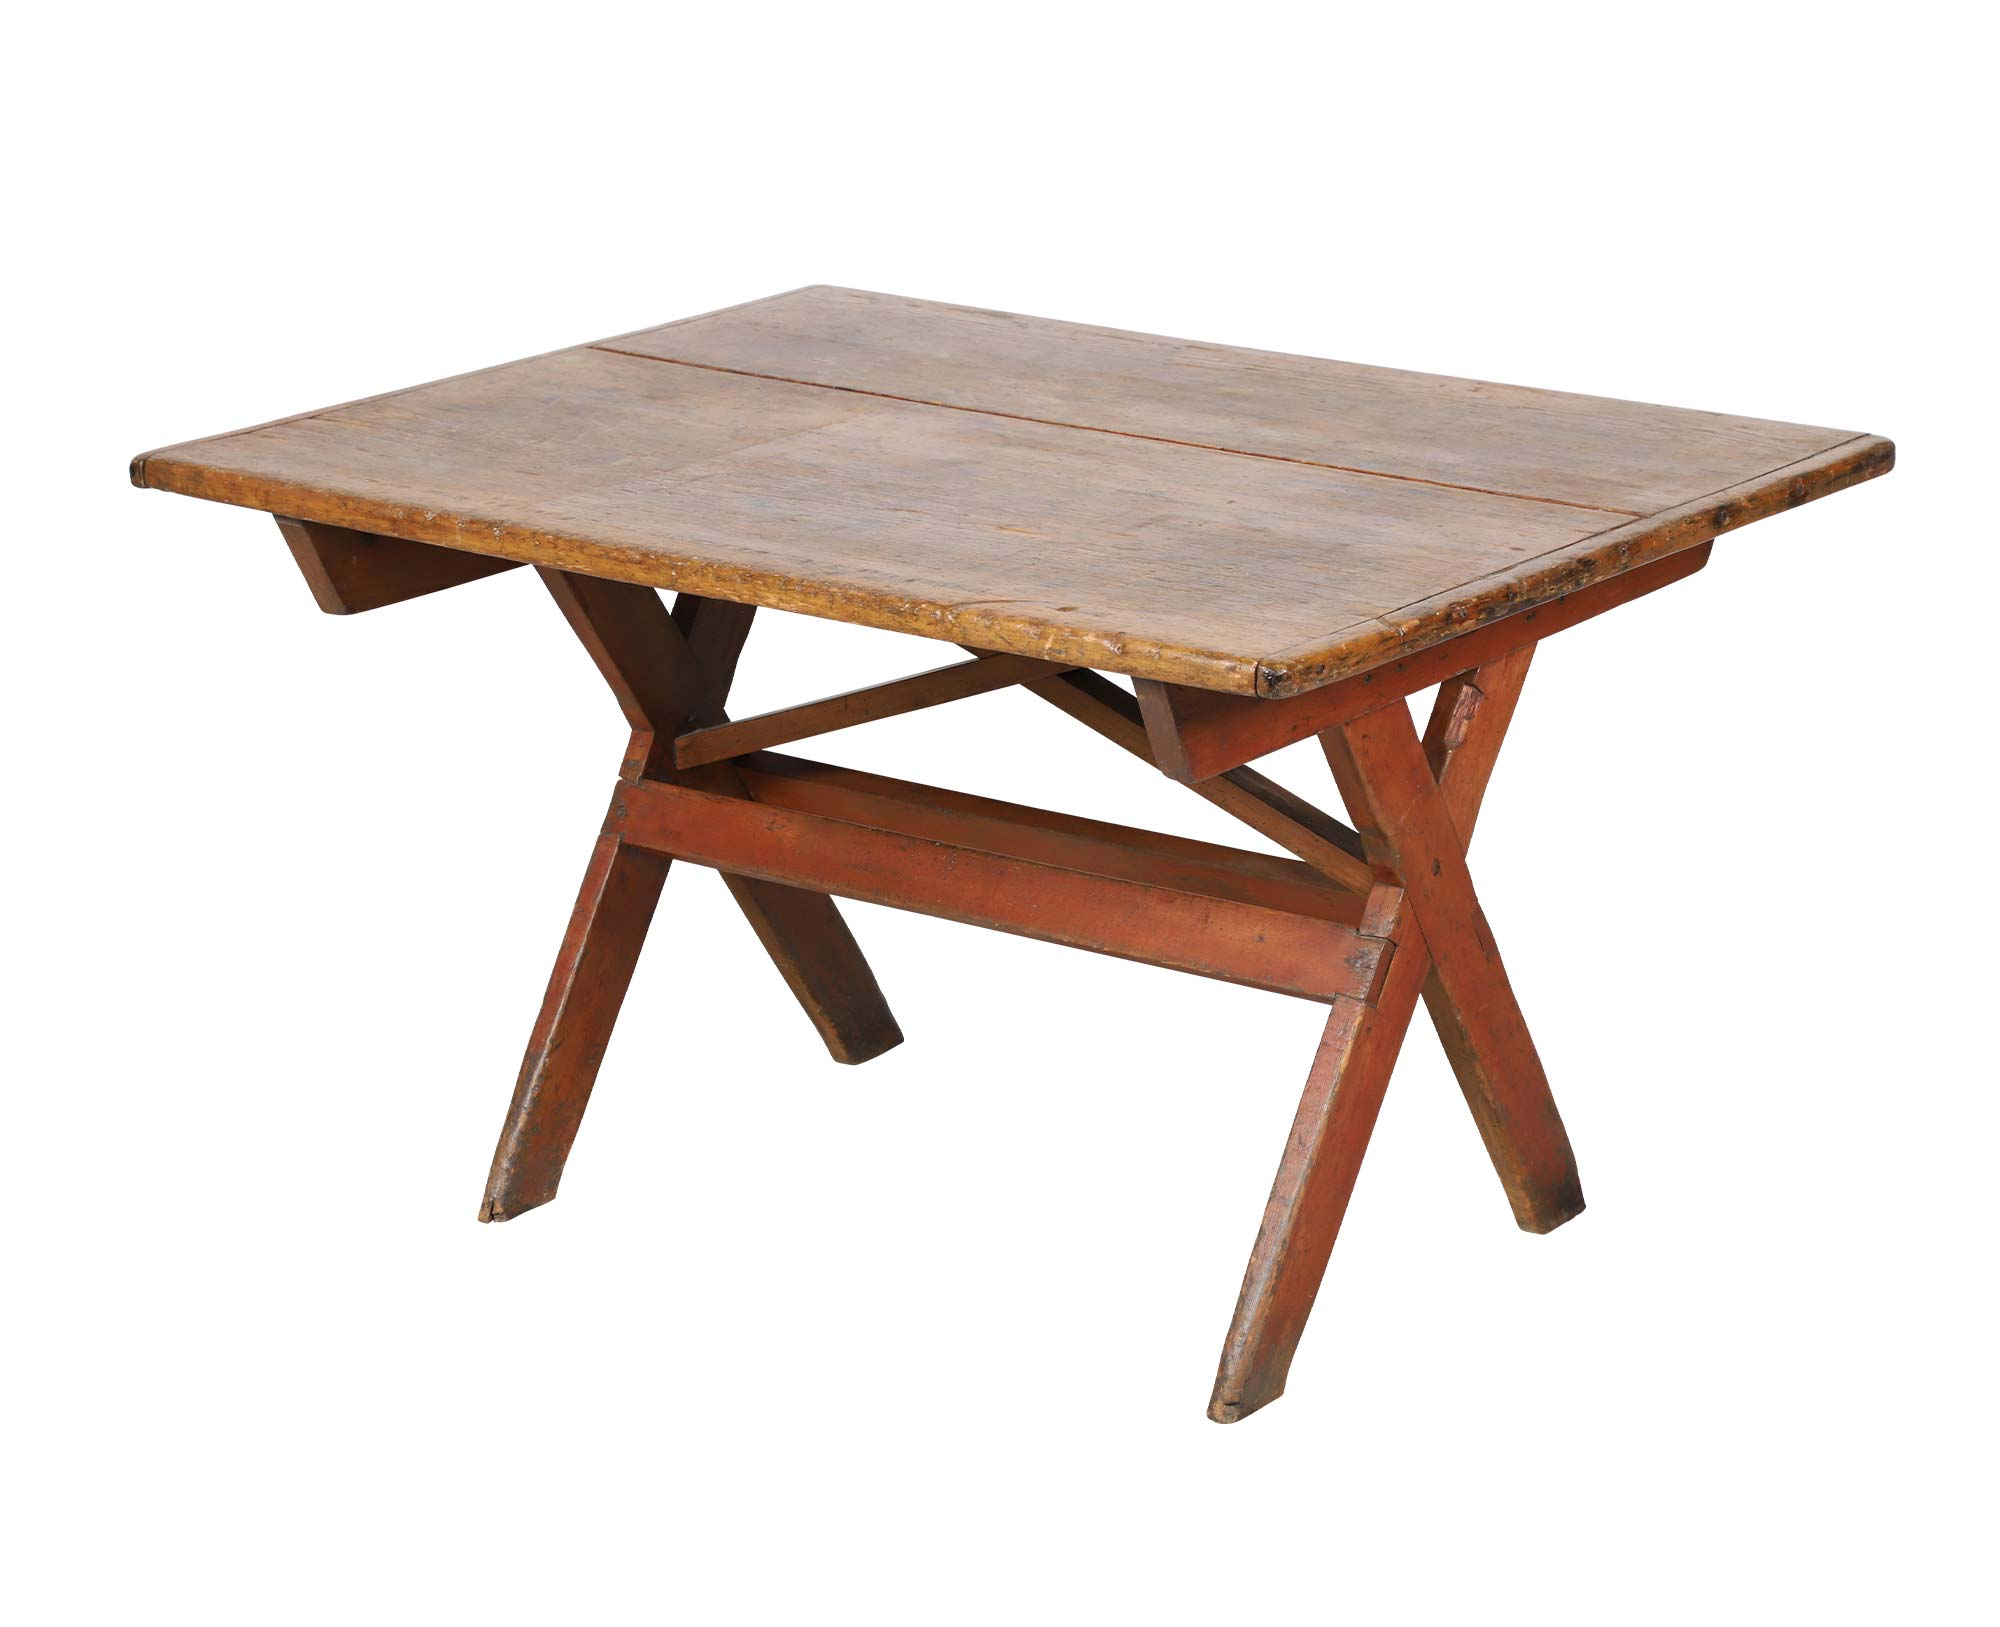 Drumbo (Ontario, Canada) painted pine sawbuck table, 1830s, $7,080. Image courtesy Miller & Miller